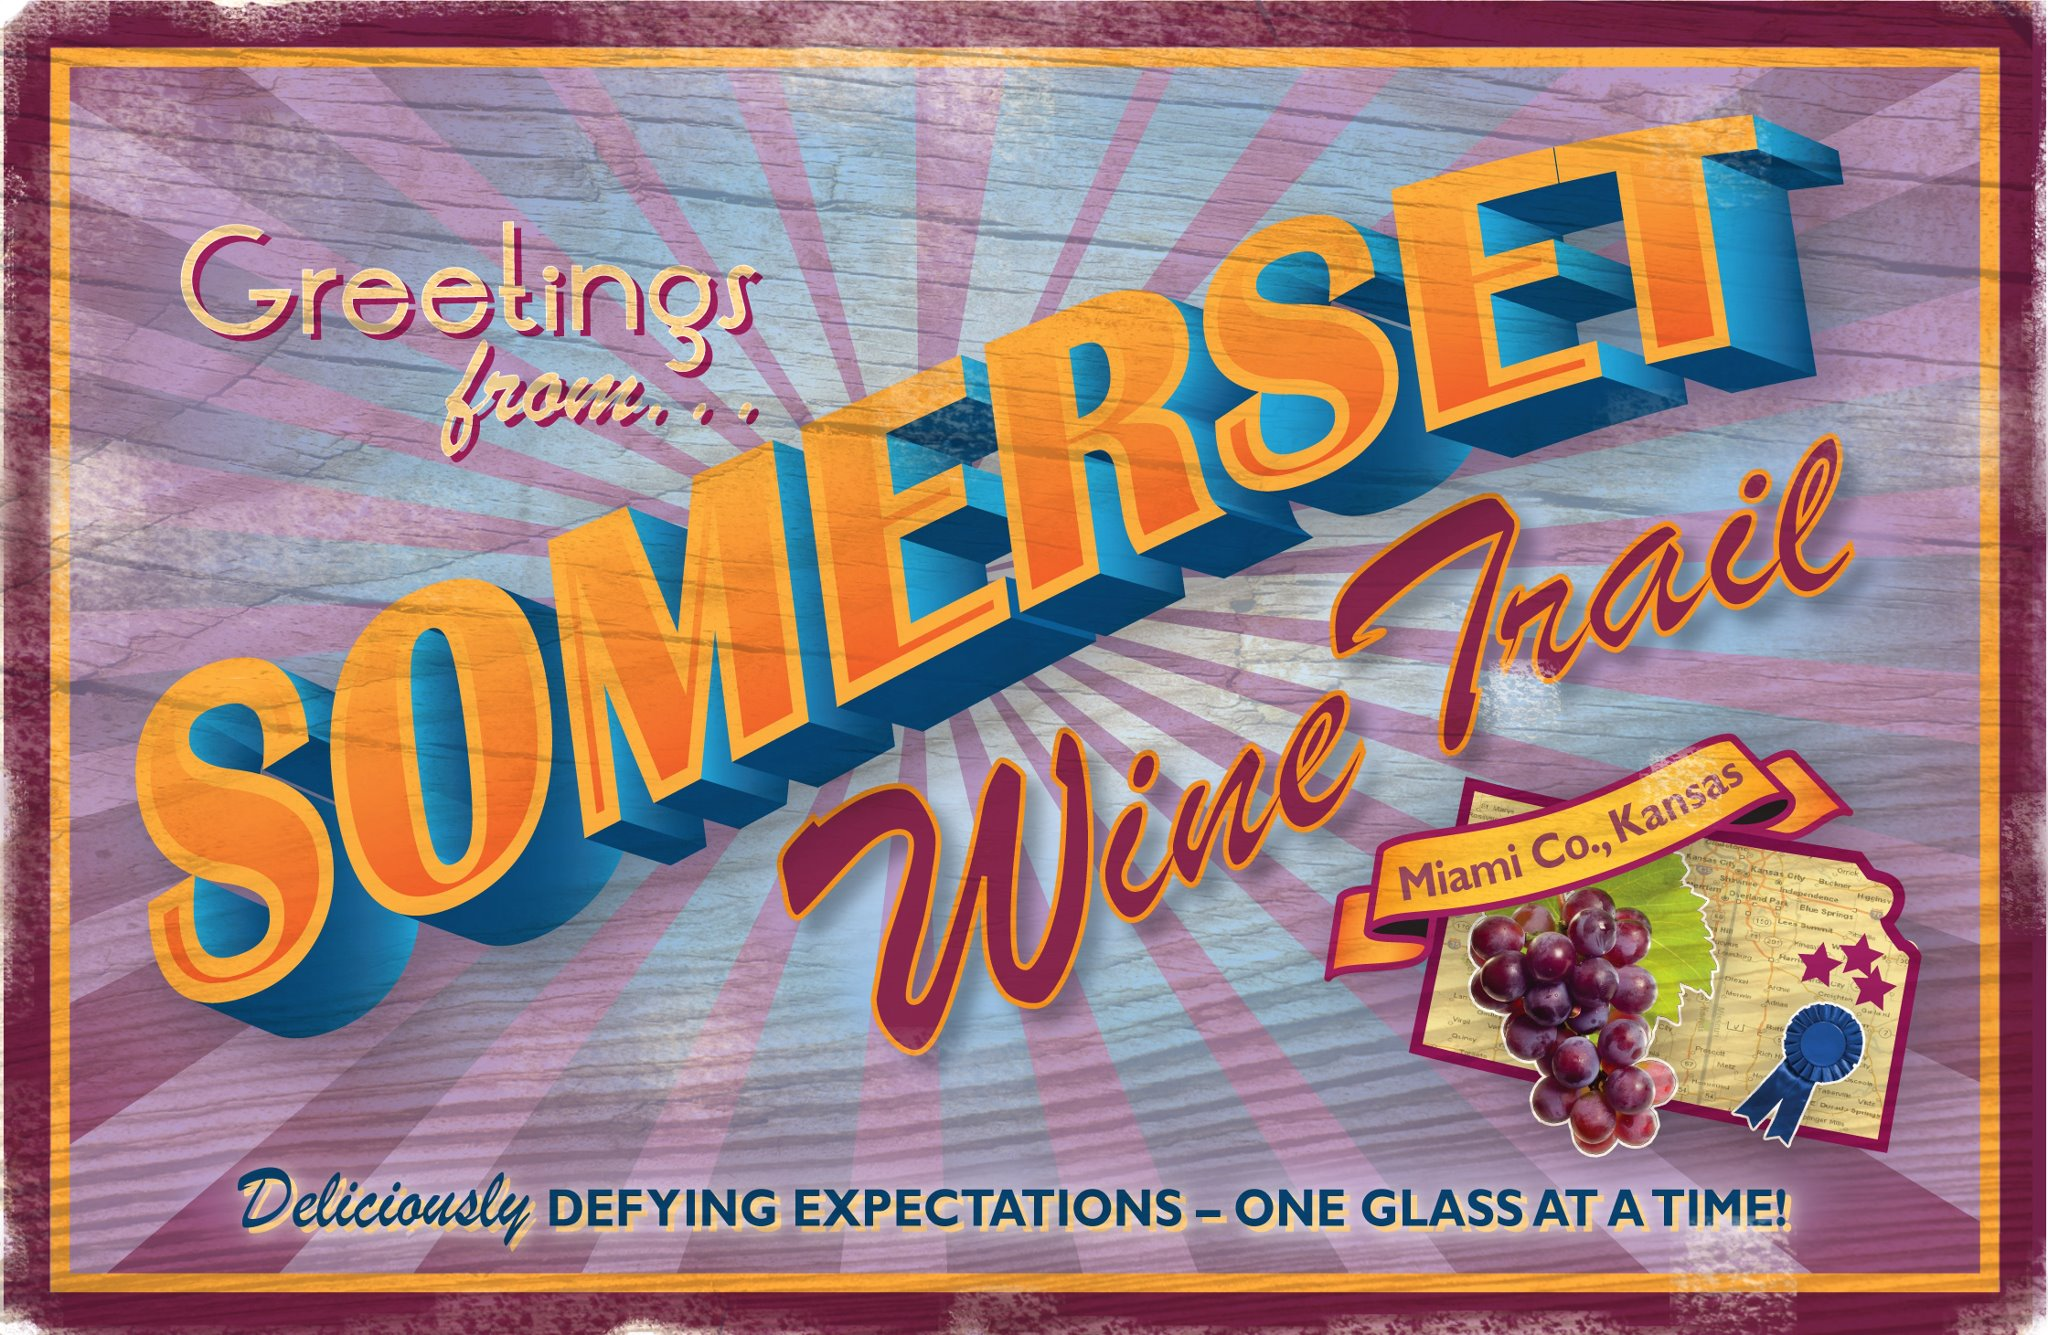 Somerset Wine Trail